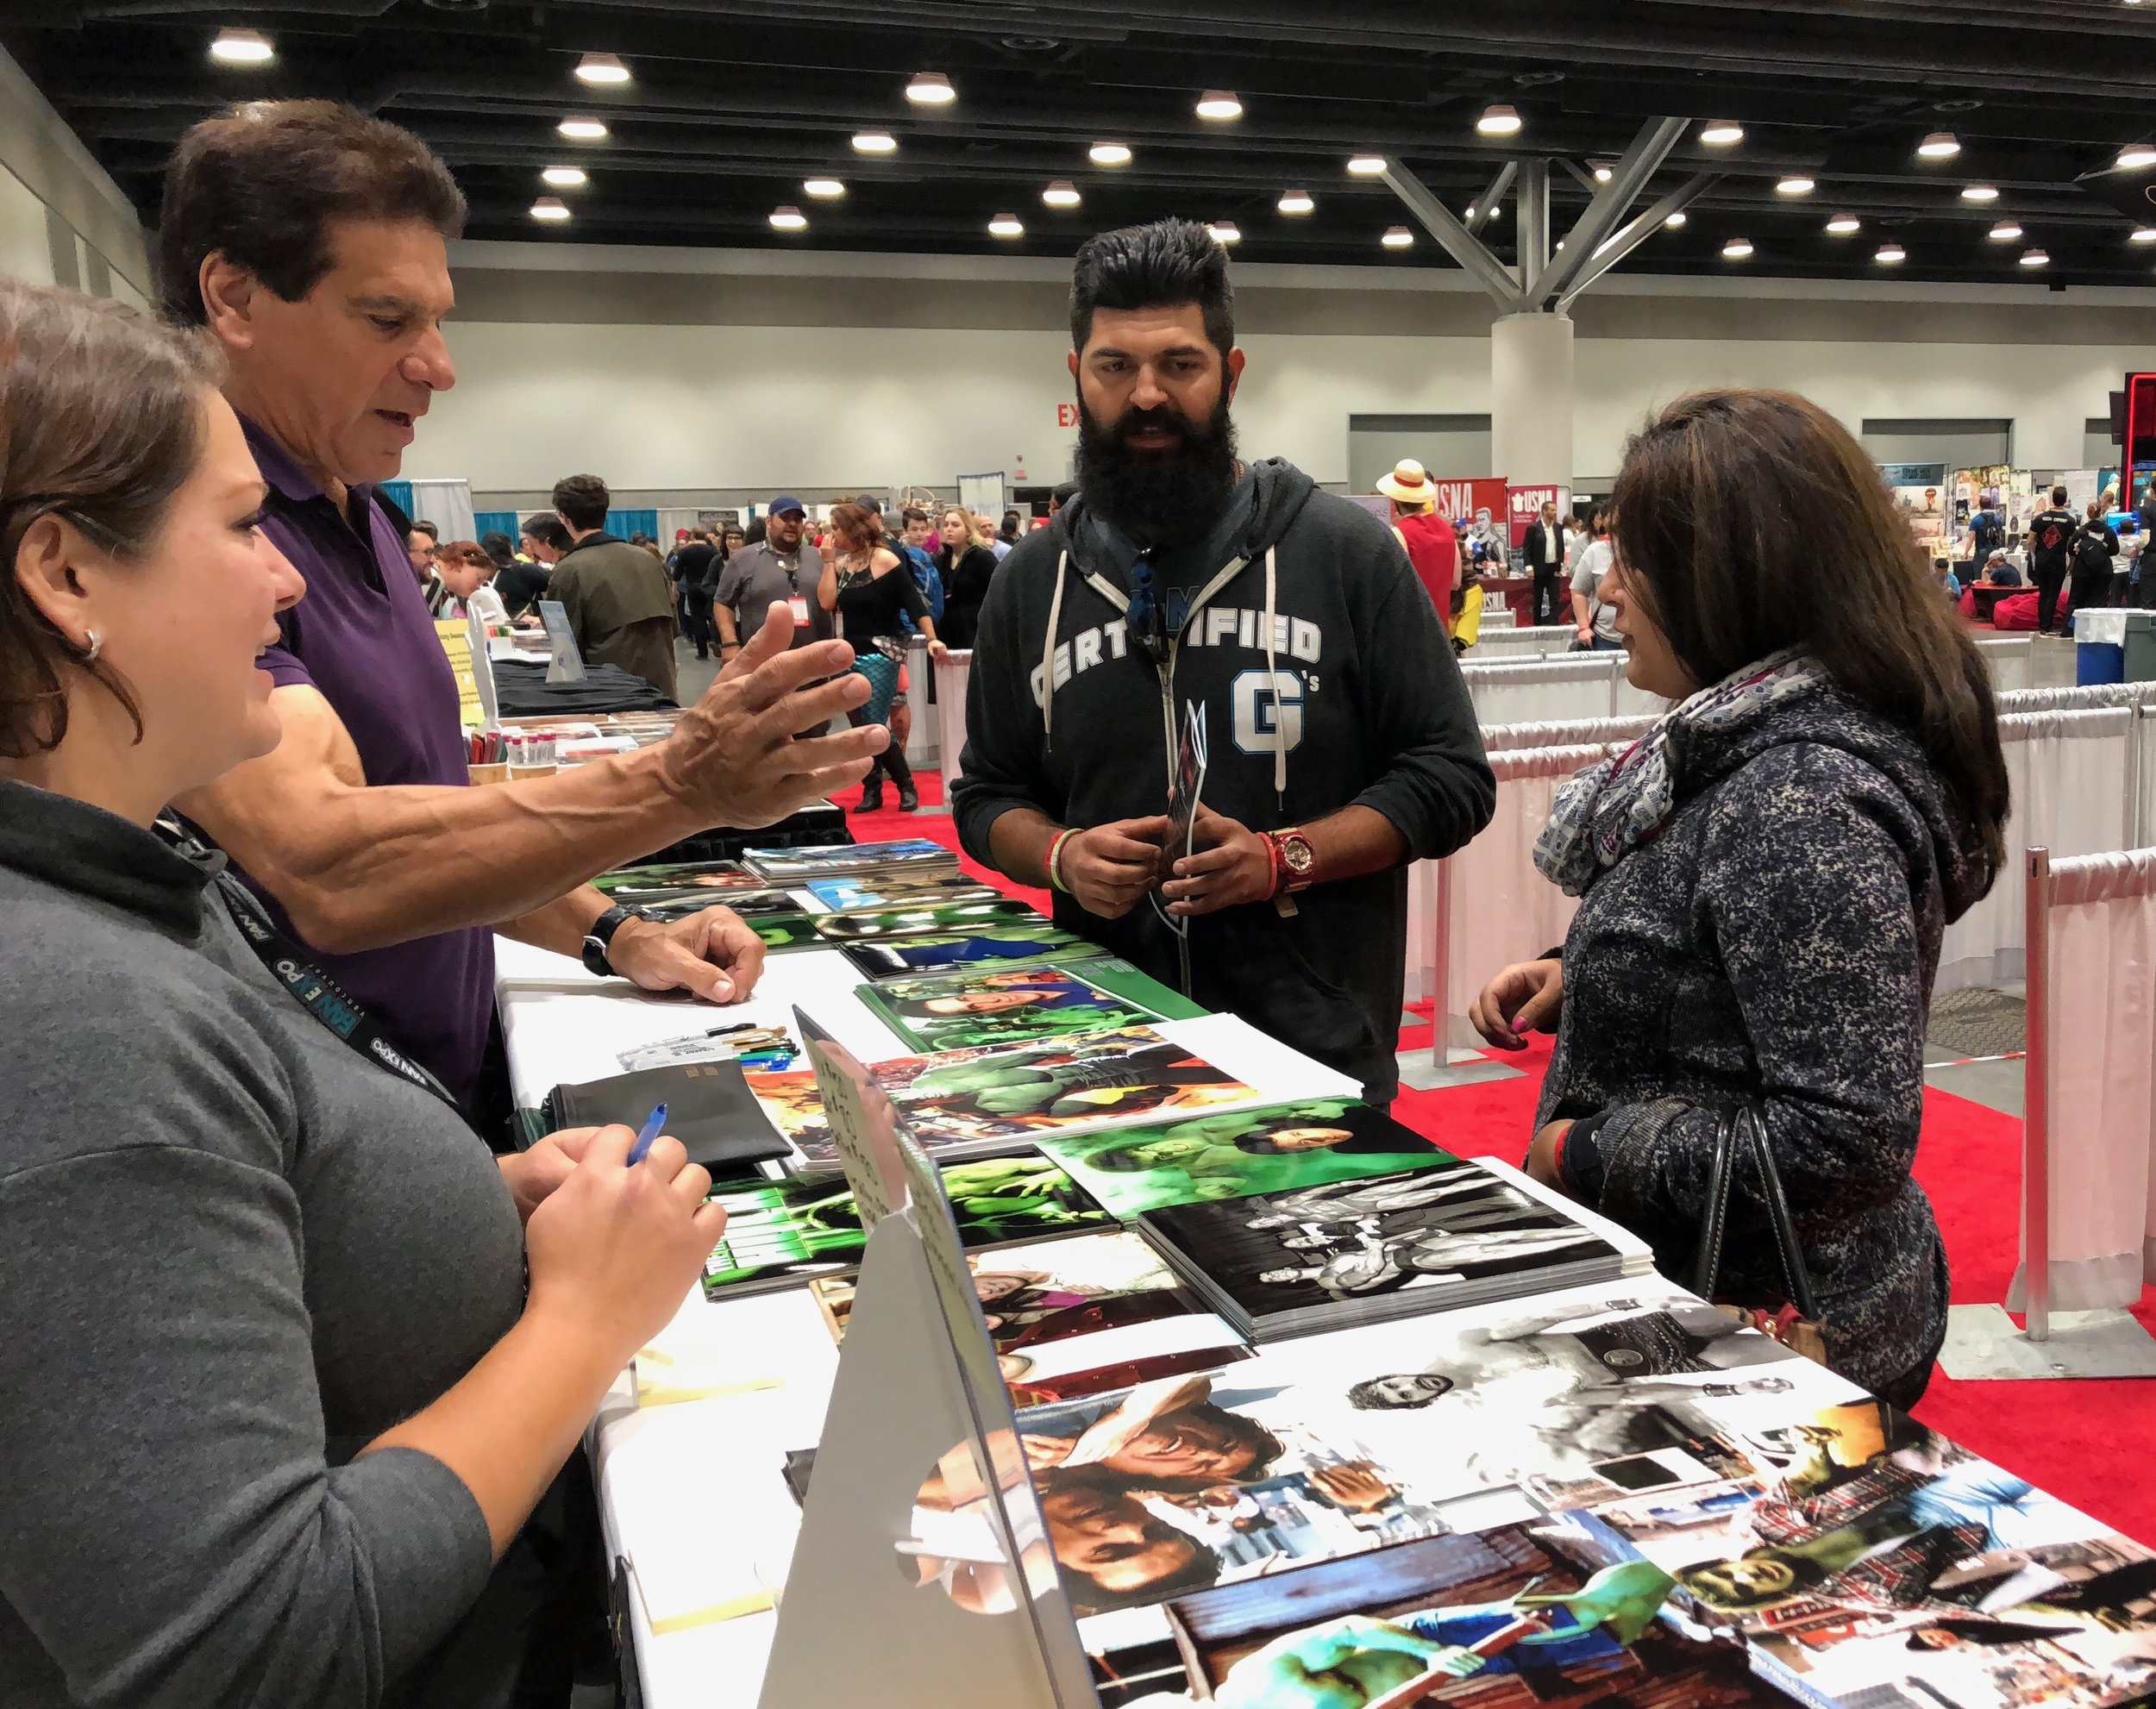 Lou Ferrigno chatting with fans at FAN EXPO Vancouver 2018.   (Photo credit: Chris Doucher/GeekNerdNet.com)